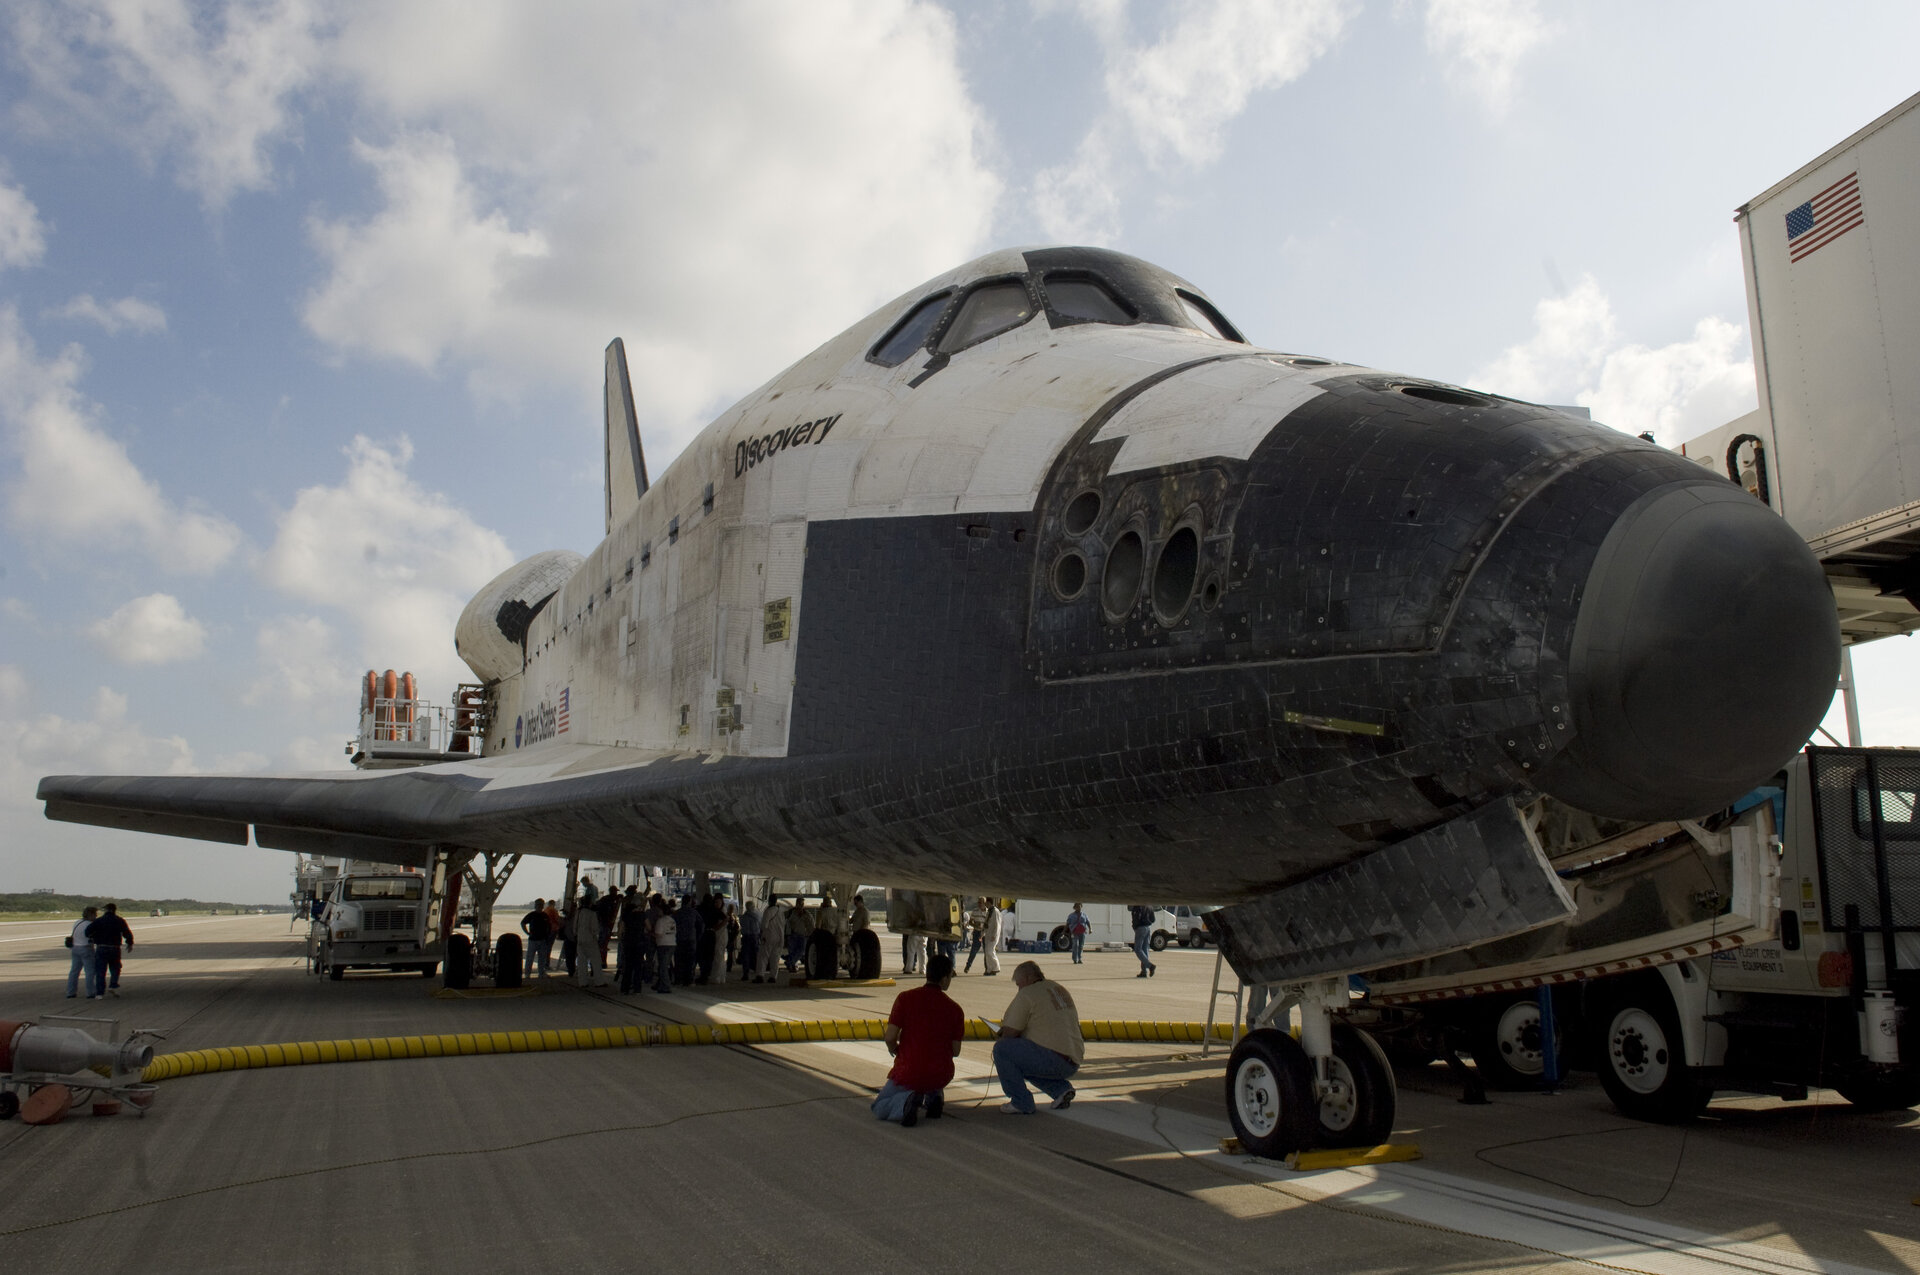 Space Shuttle Discovery lands at Kennedy Space Center, Florida, 7 November 2007.